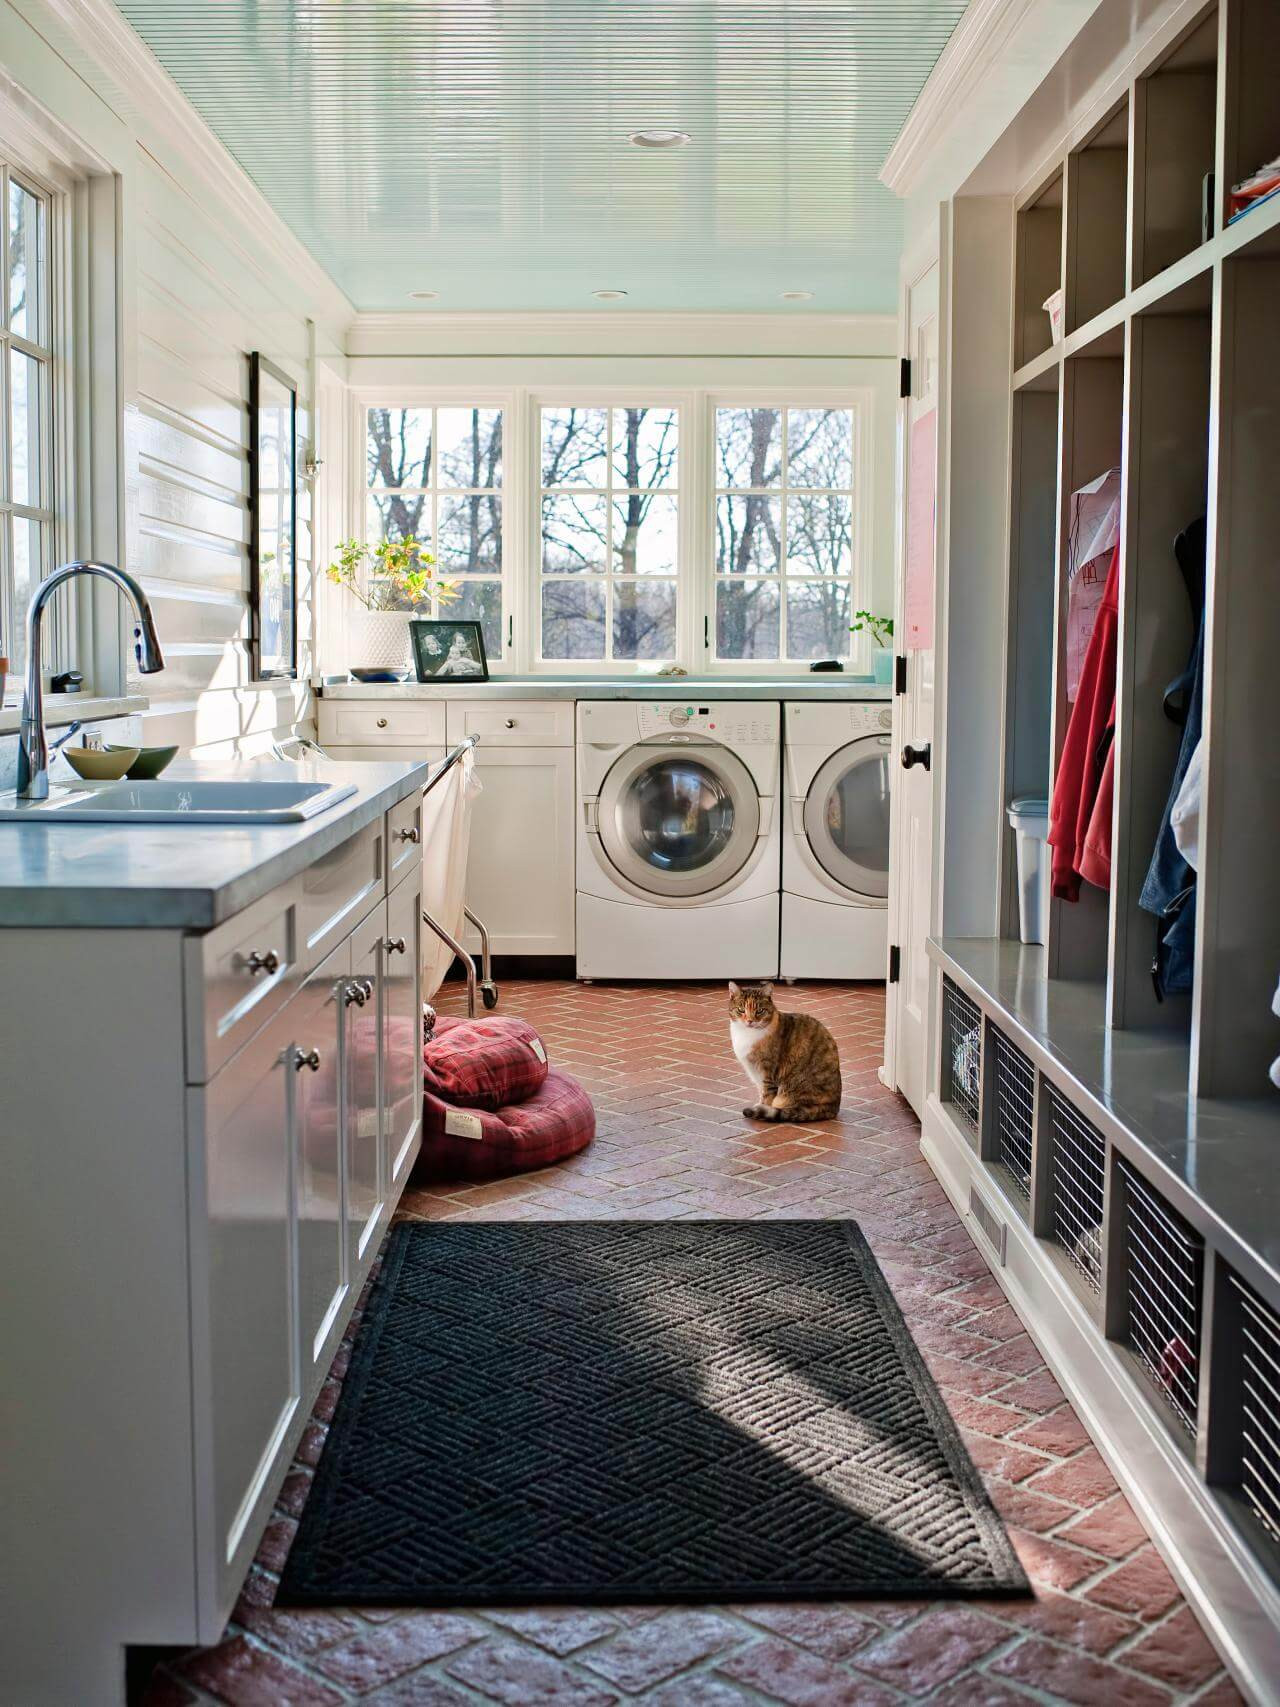 Best ideas about Mudroom Laundry Room Ideas . Save or Pin 45 Superb Mudroom & Entryway Design Ideas with Benches Now.